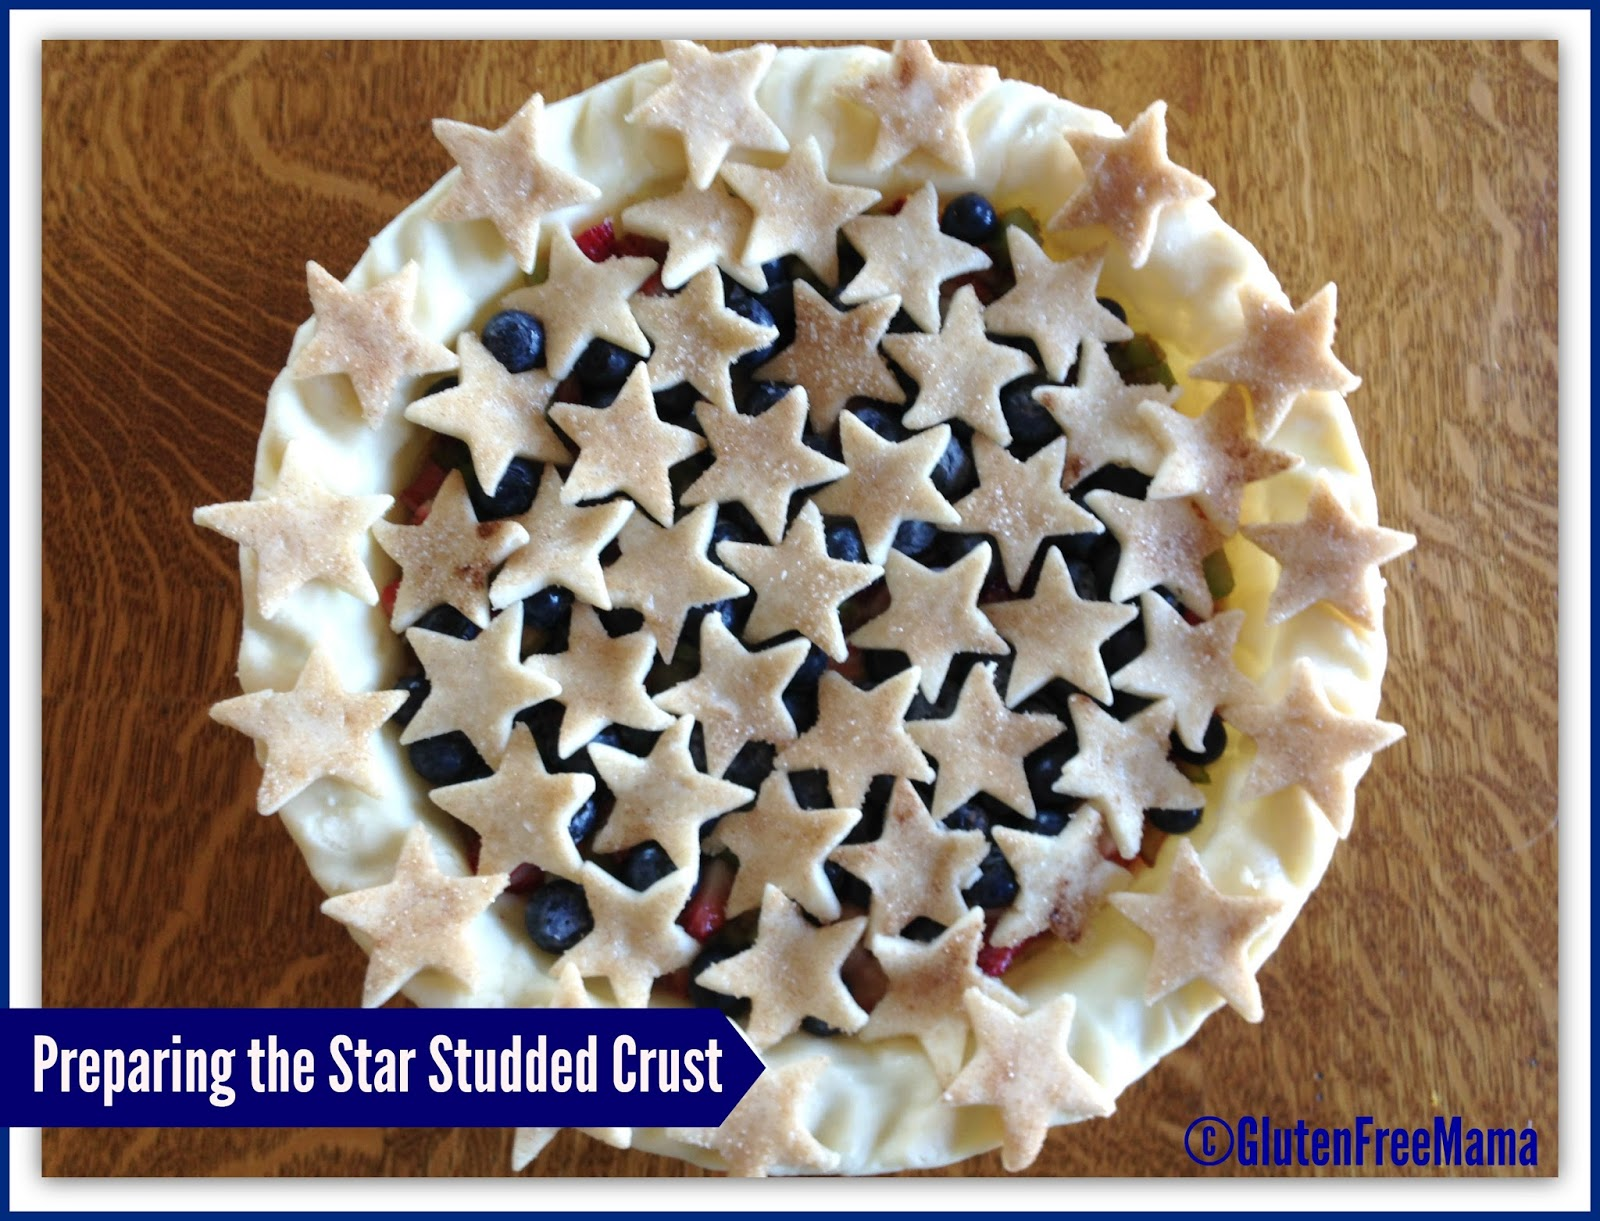 Gluten Free Strawberry Rhubarb Pie with Blueberries and Star-studded Crust